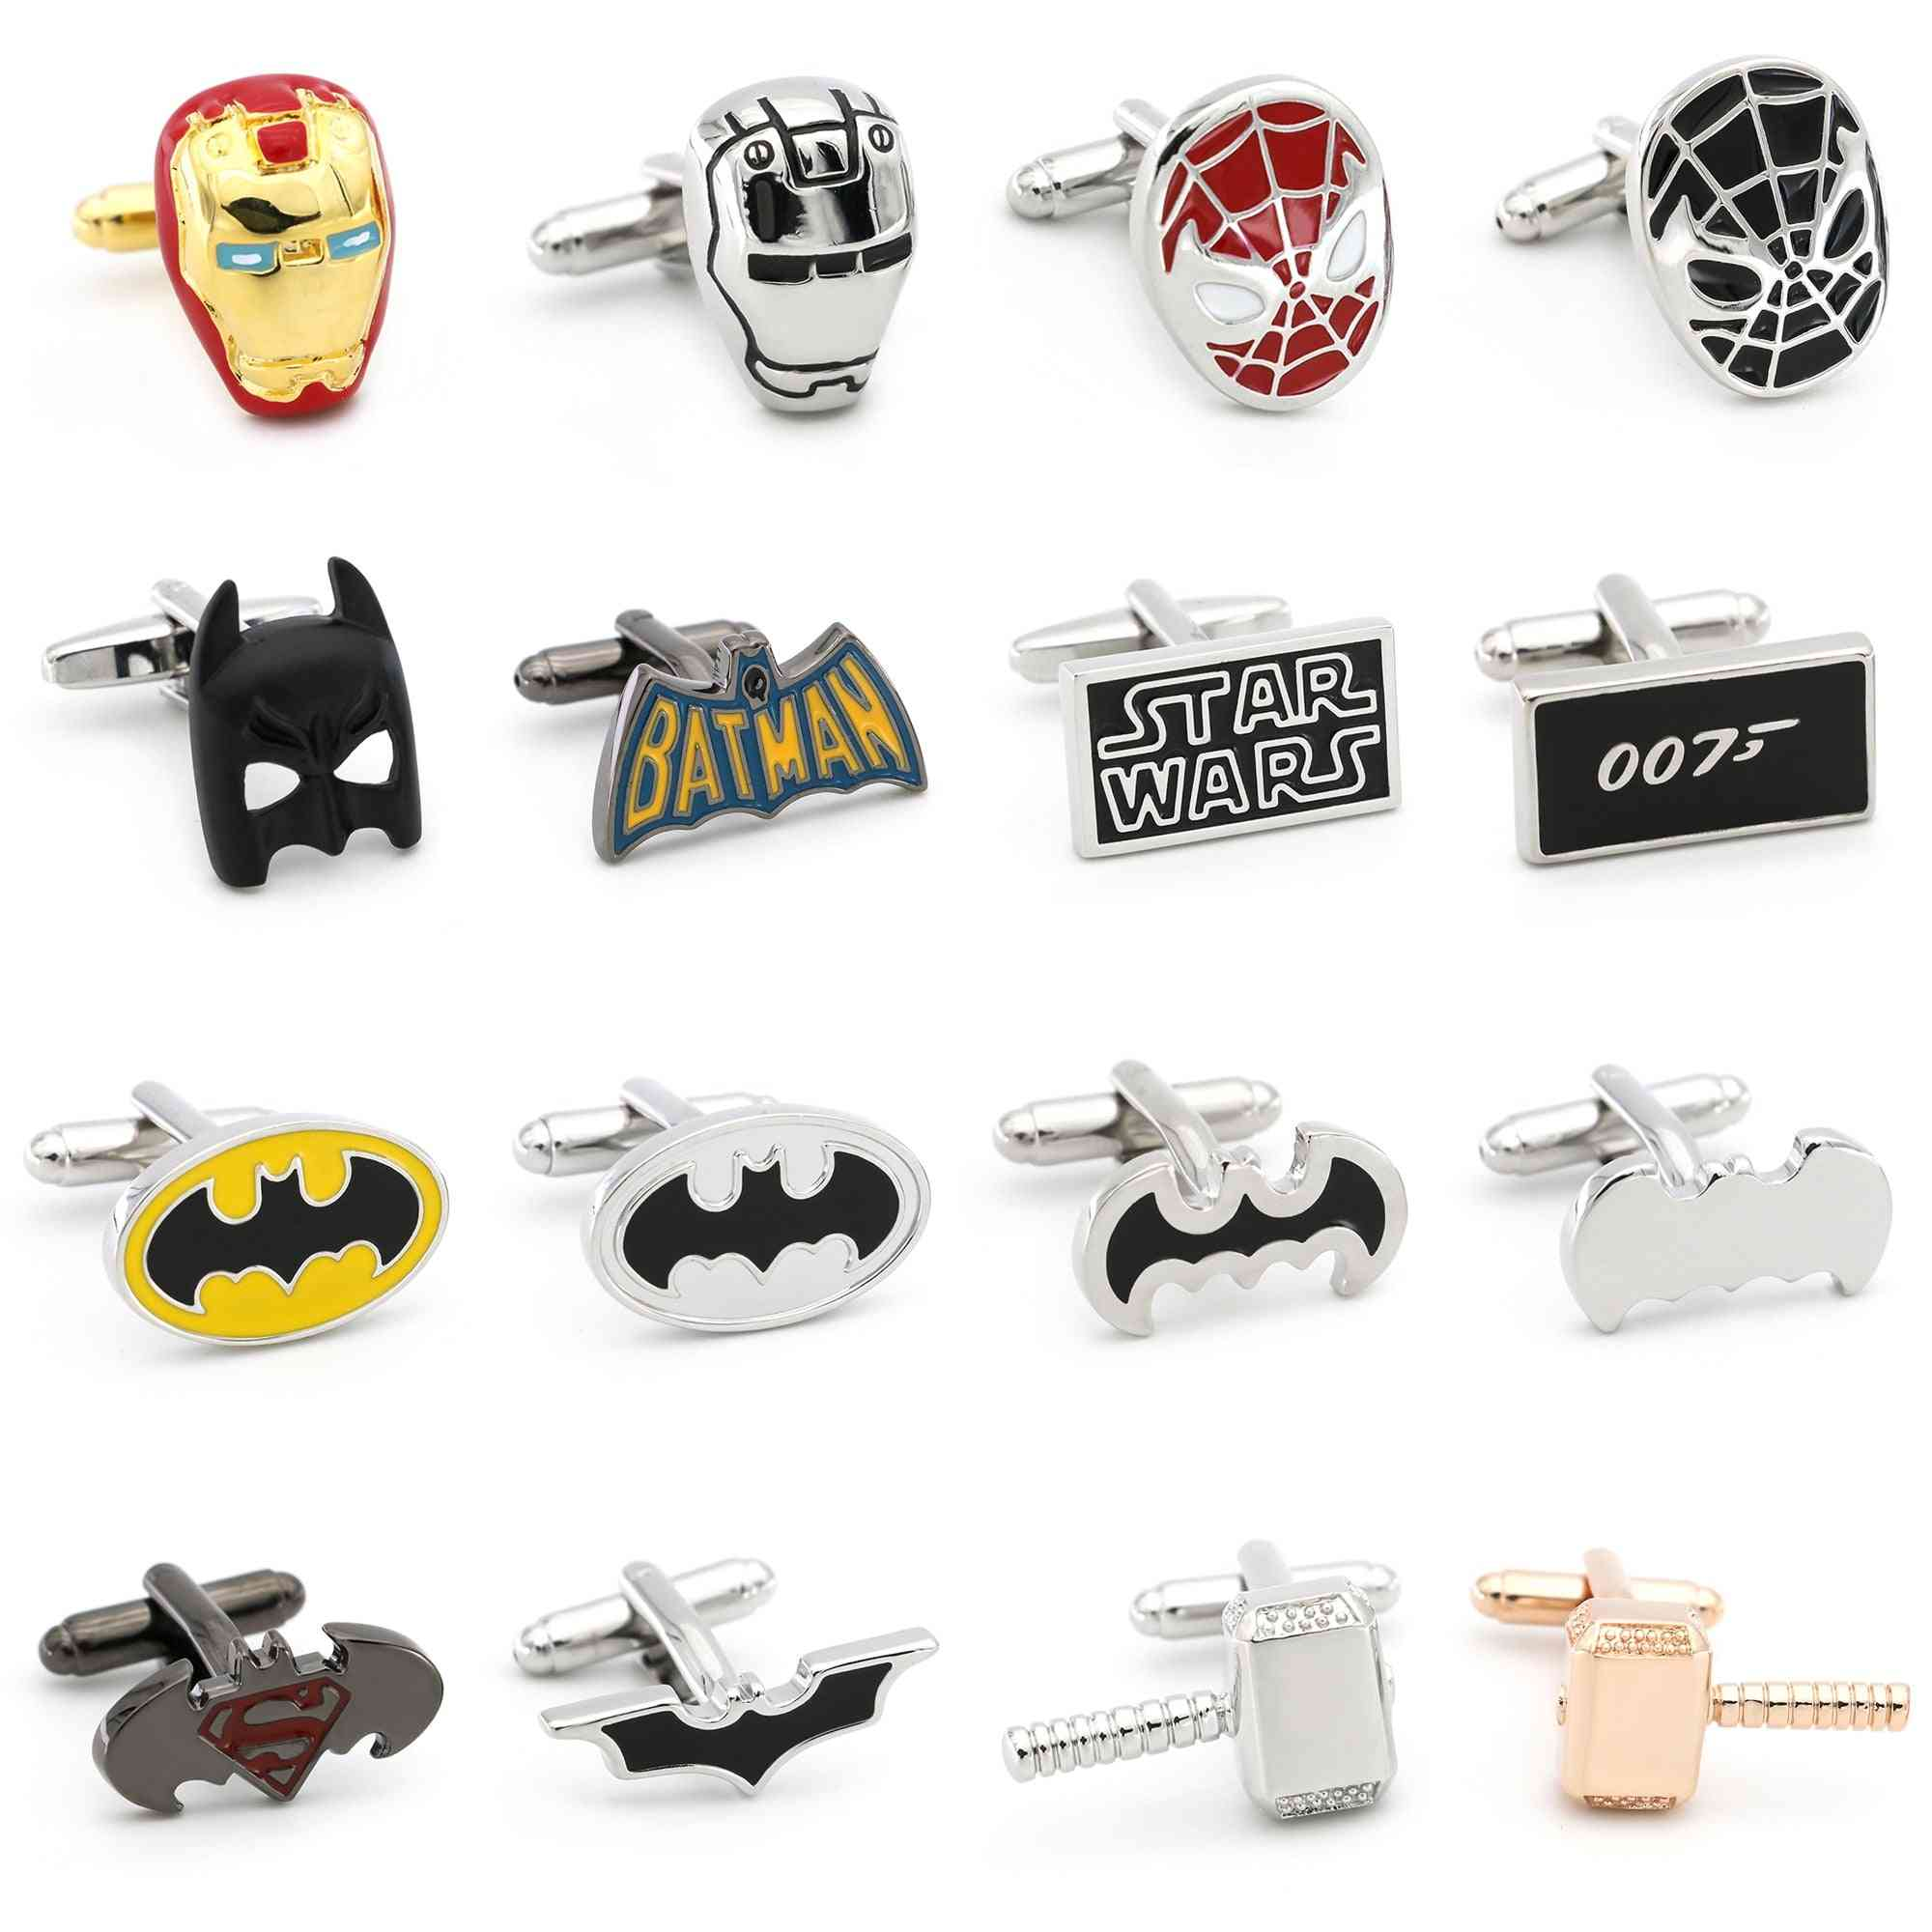 Classic Superheroes Cufflinks, Quality Brass Material, Smooth Plating Cuff Links